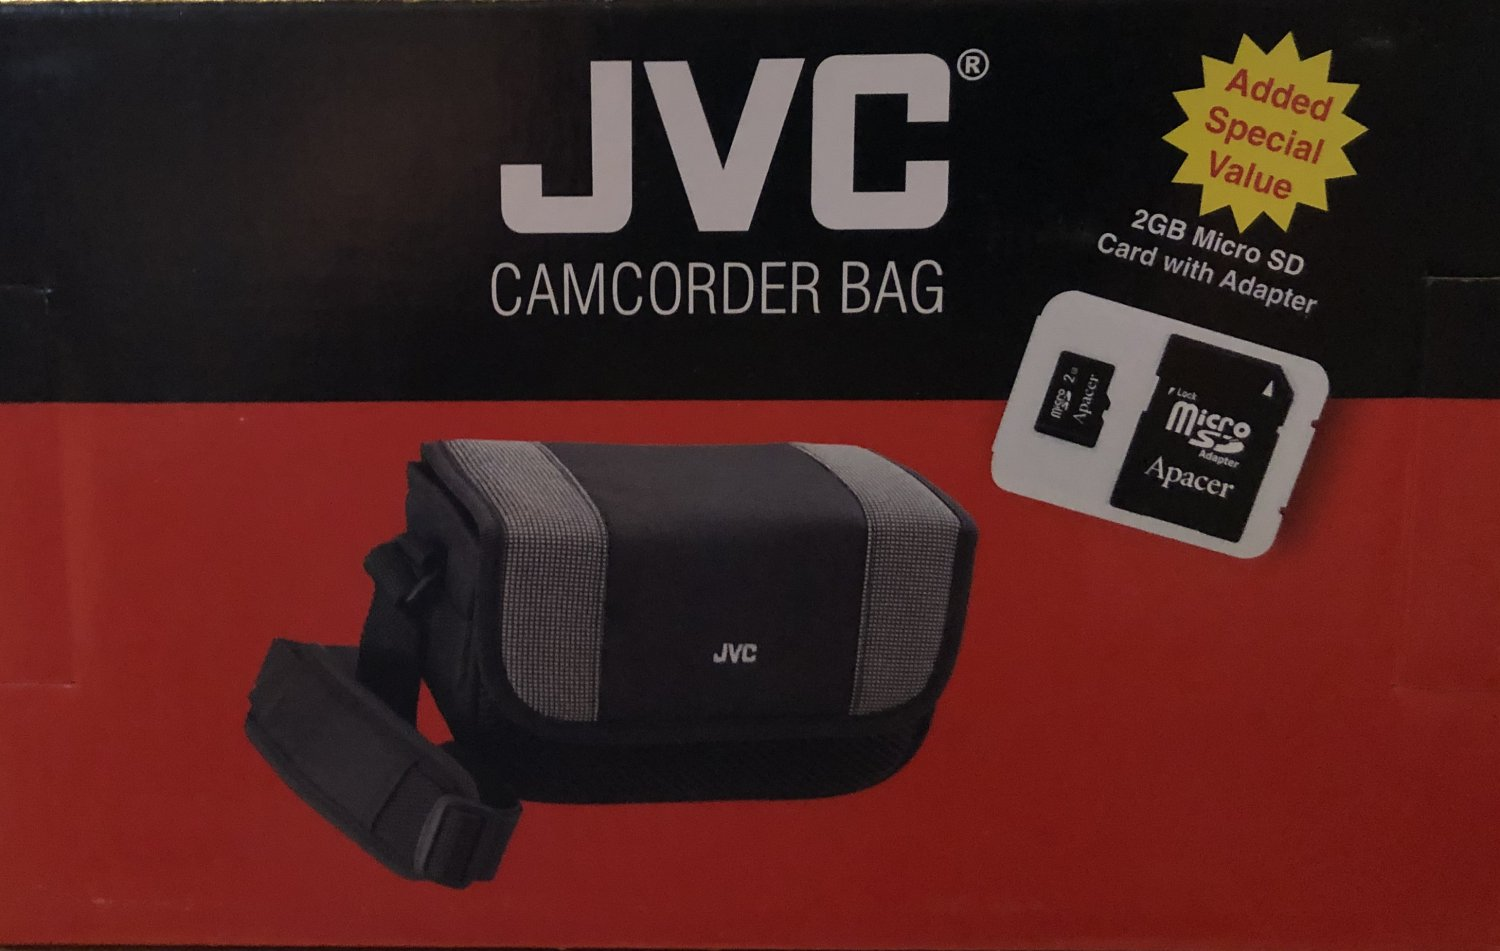 CAMCORDER BAG by JVC w/2GB Micro SD Card and Adapter